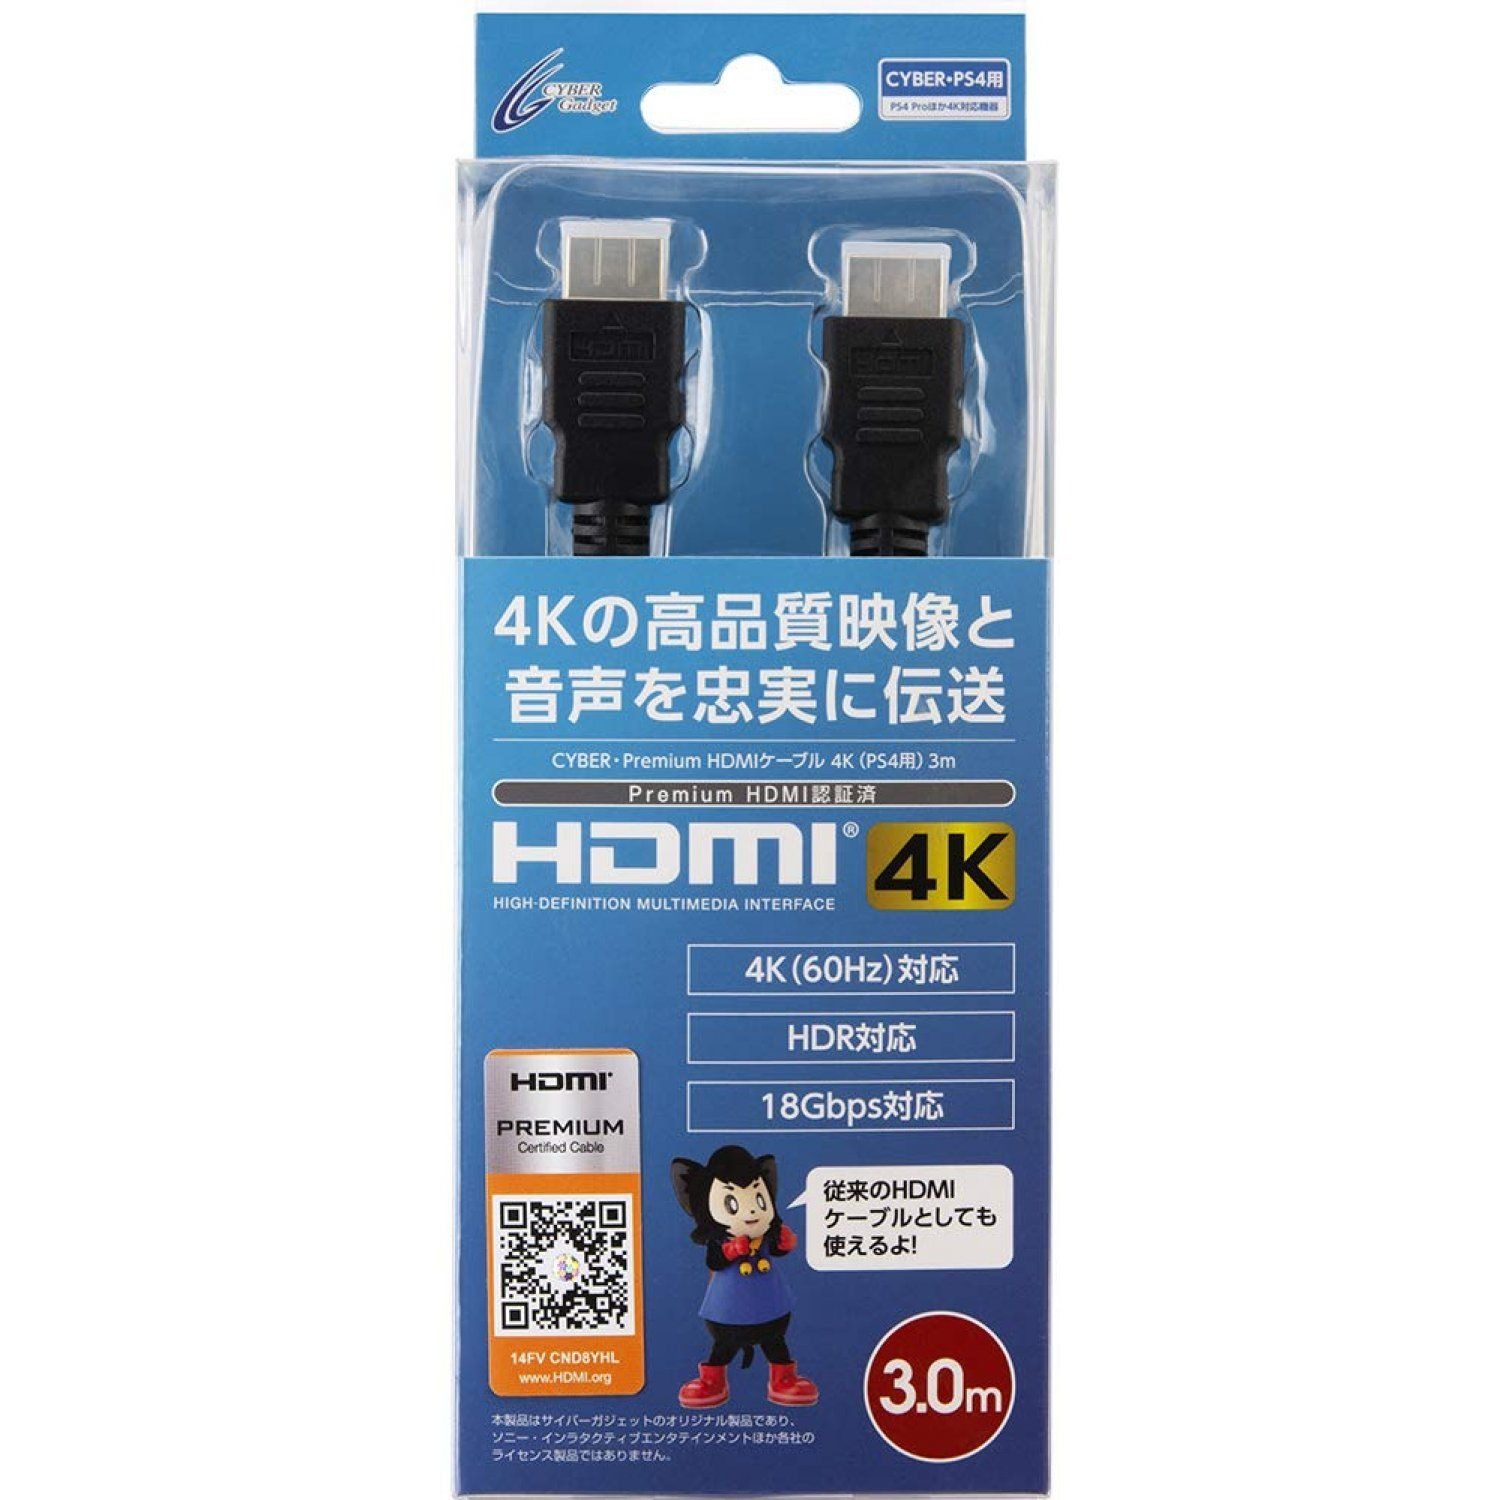 Cyber premium 4k hdmi cable for ps4 3 m hdmi cables